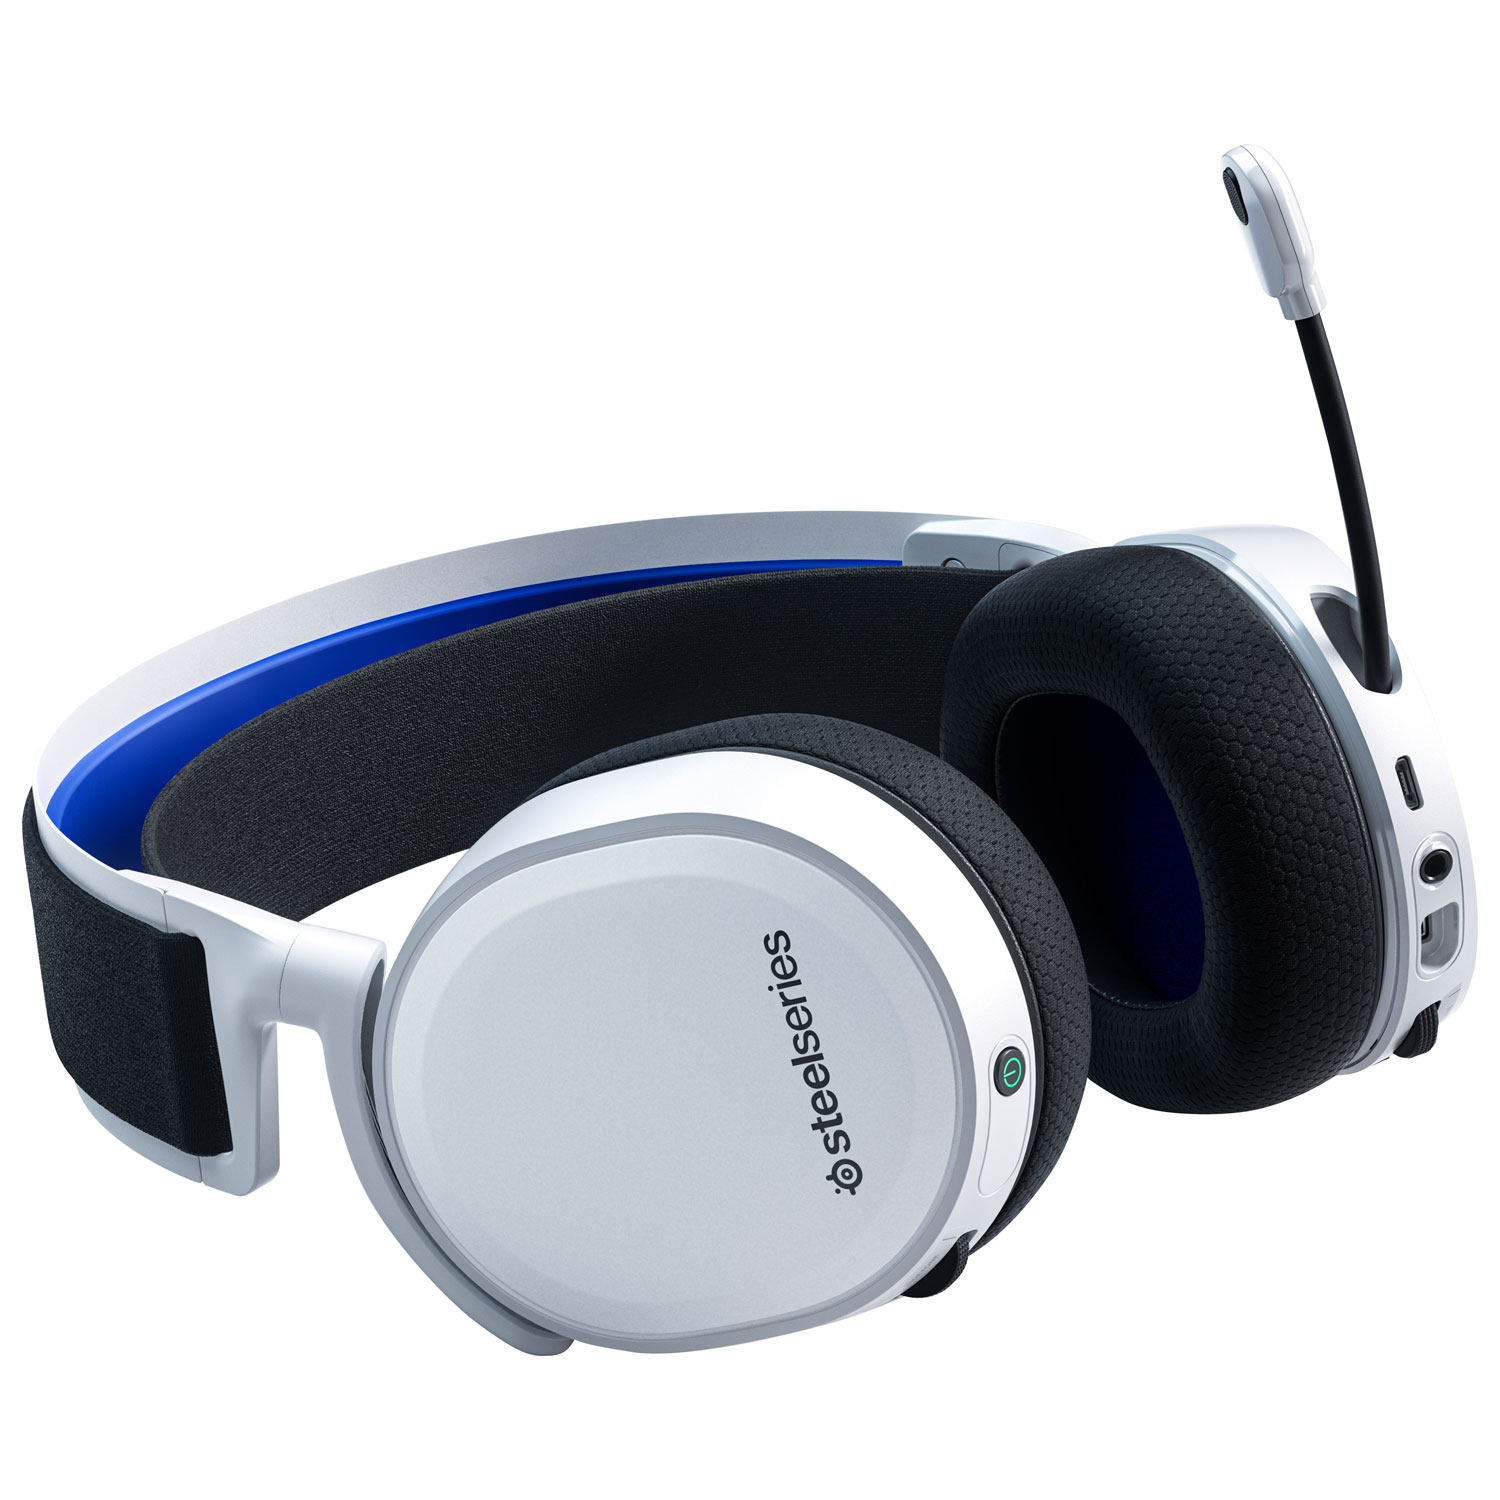 Steelseries Arctis 7p Wireless Gaming Headset For Playstation 5 White Best Buy Canada